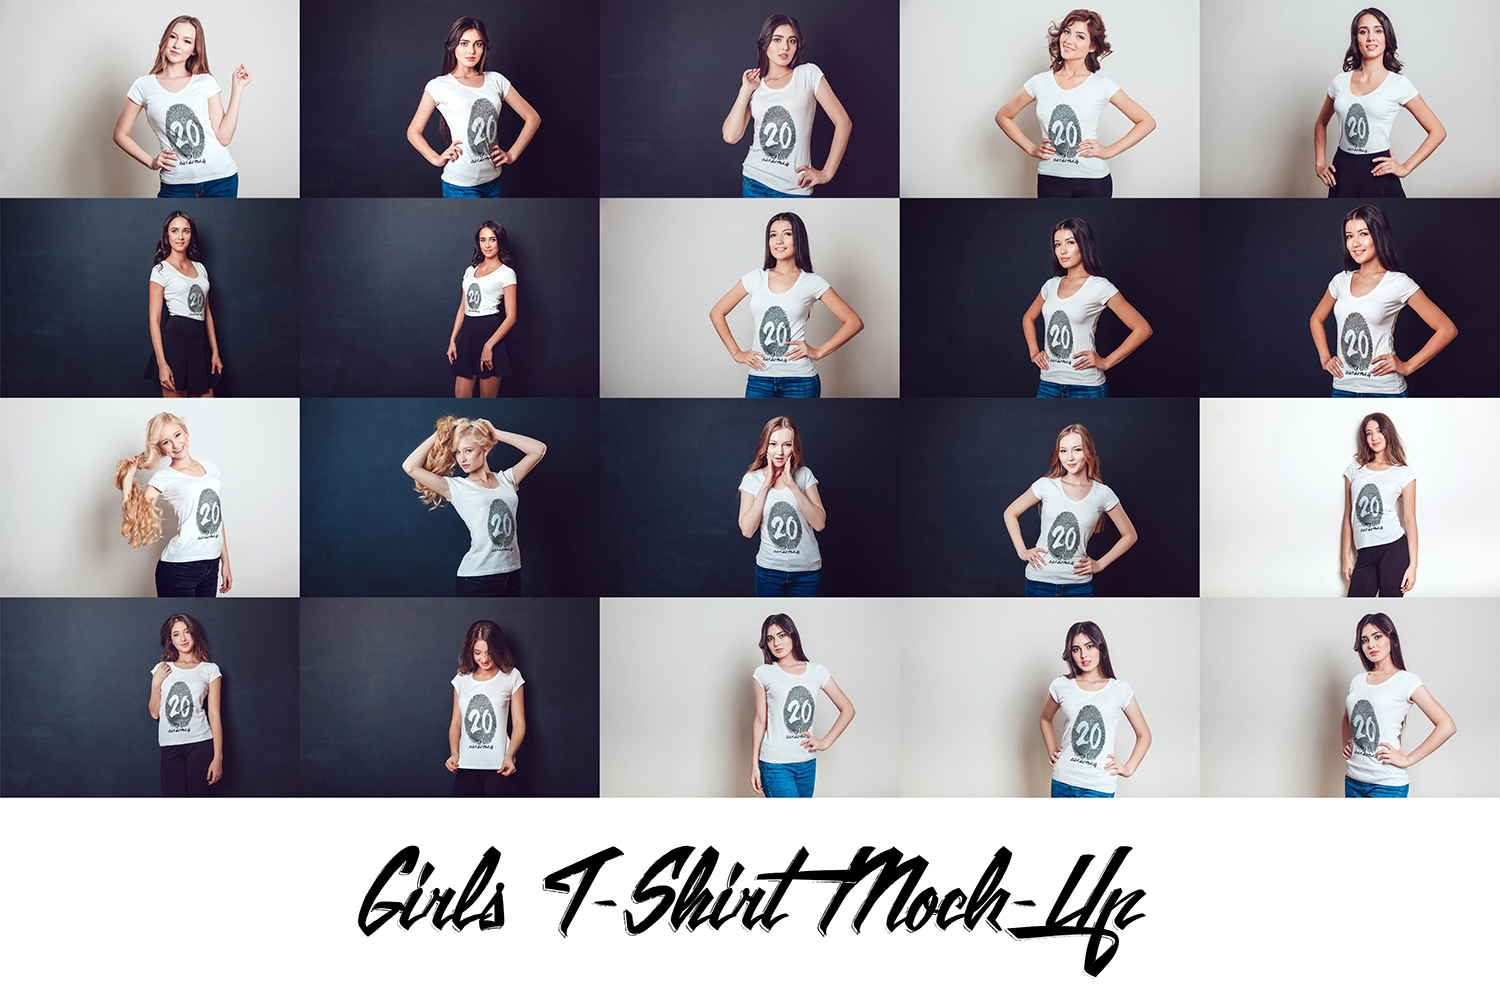 20 Top Girls T-Shirt Mock-Up example image 5